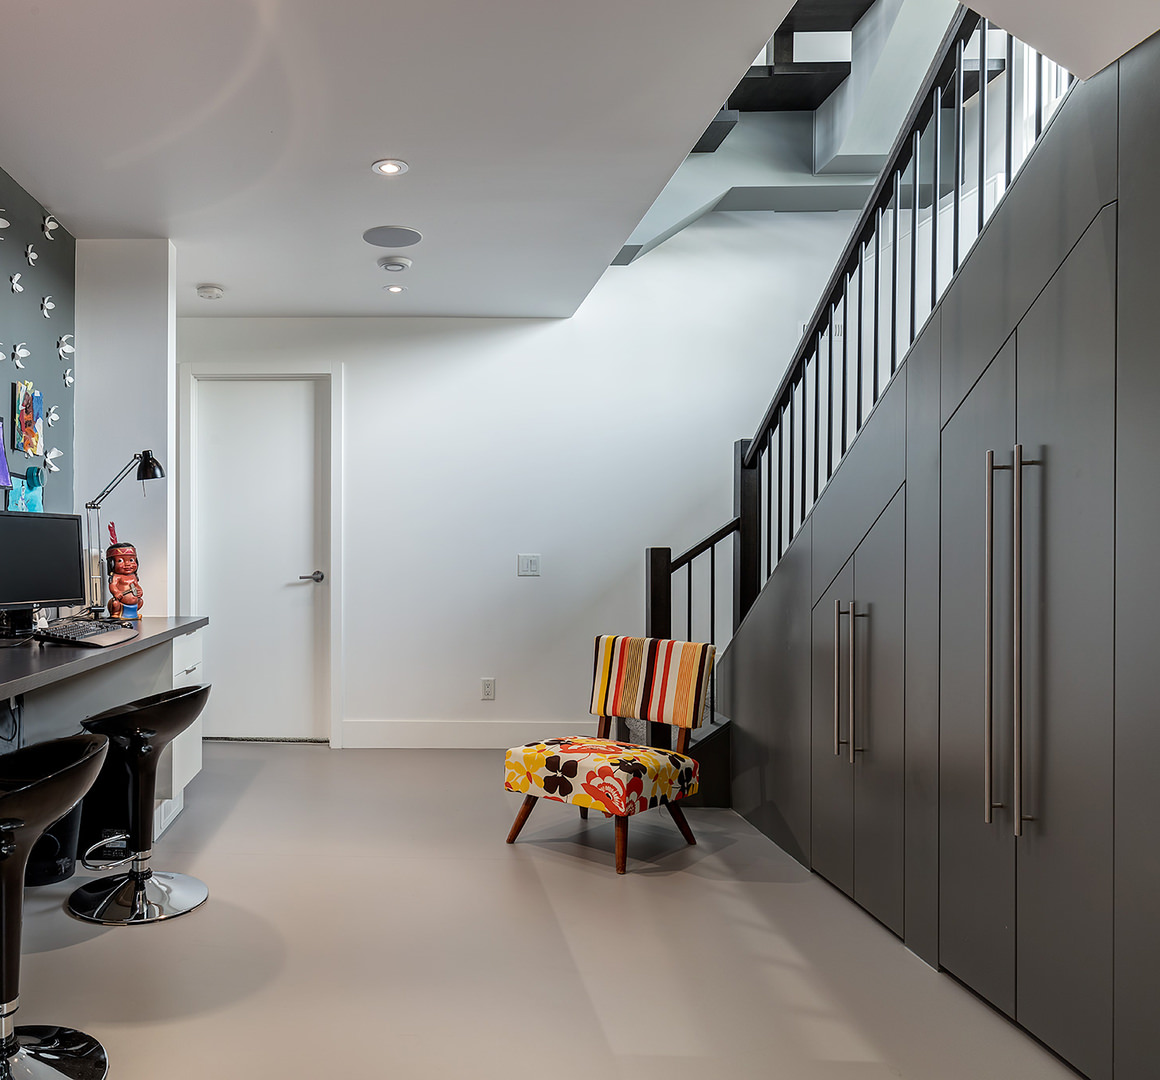 Facing the staircase under the steel cabinet is an IT corner where computers are set and gadgets are located. The furnishing and wall is covered with black, grey tone coating and white stucco while the floral cushioned seat stands decoratively on the staircase side.